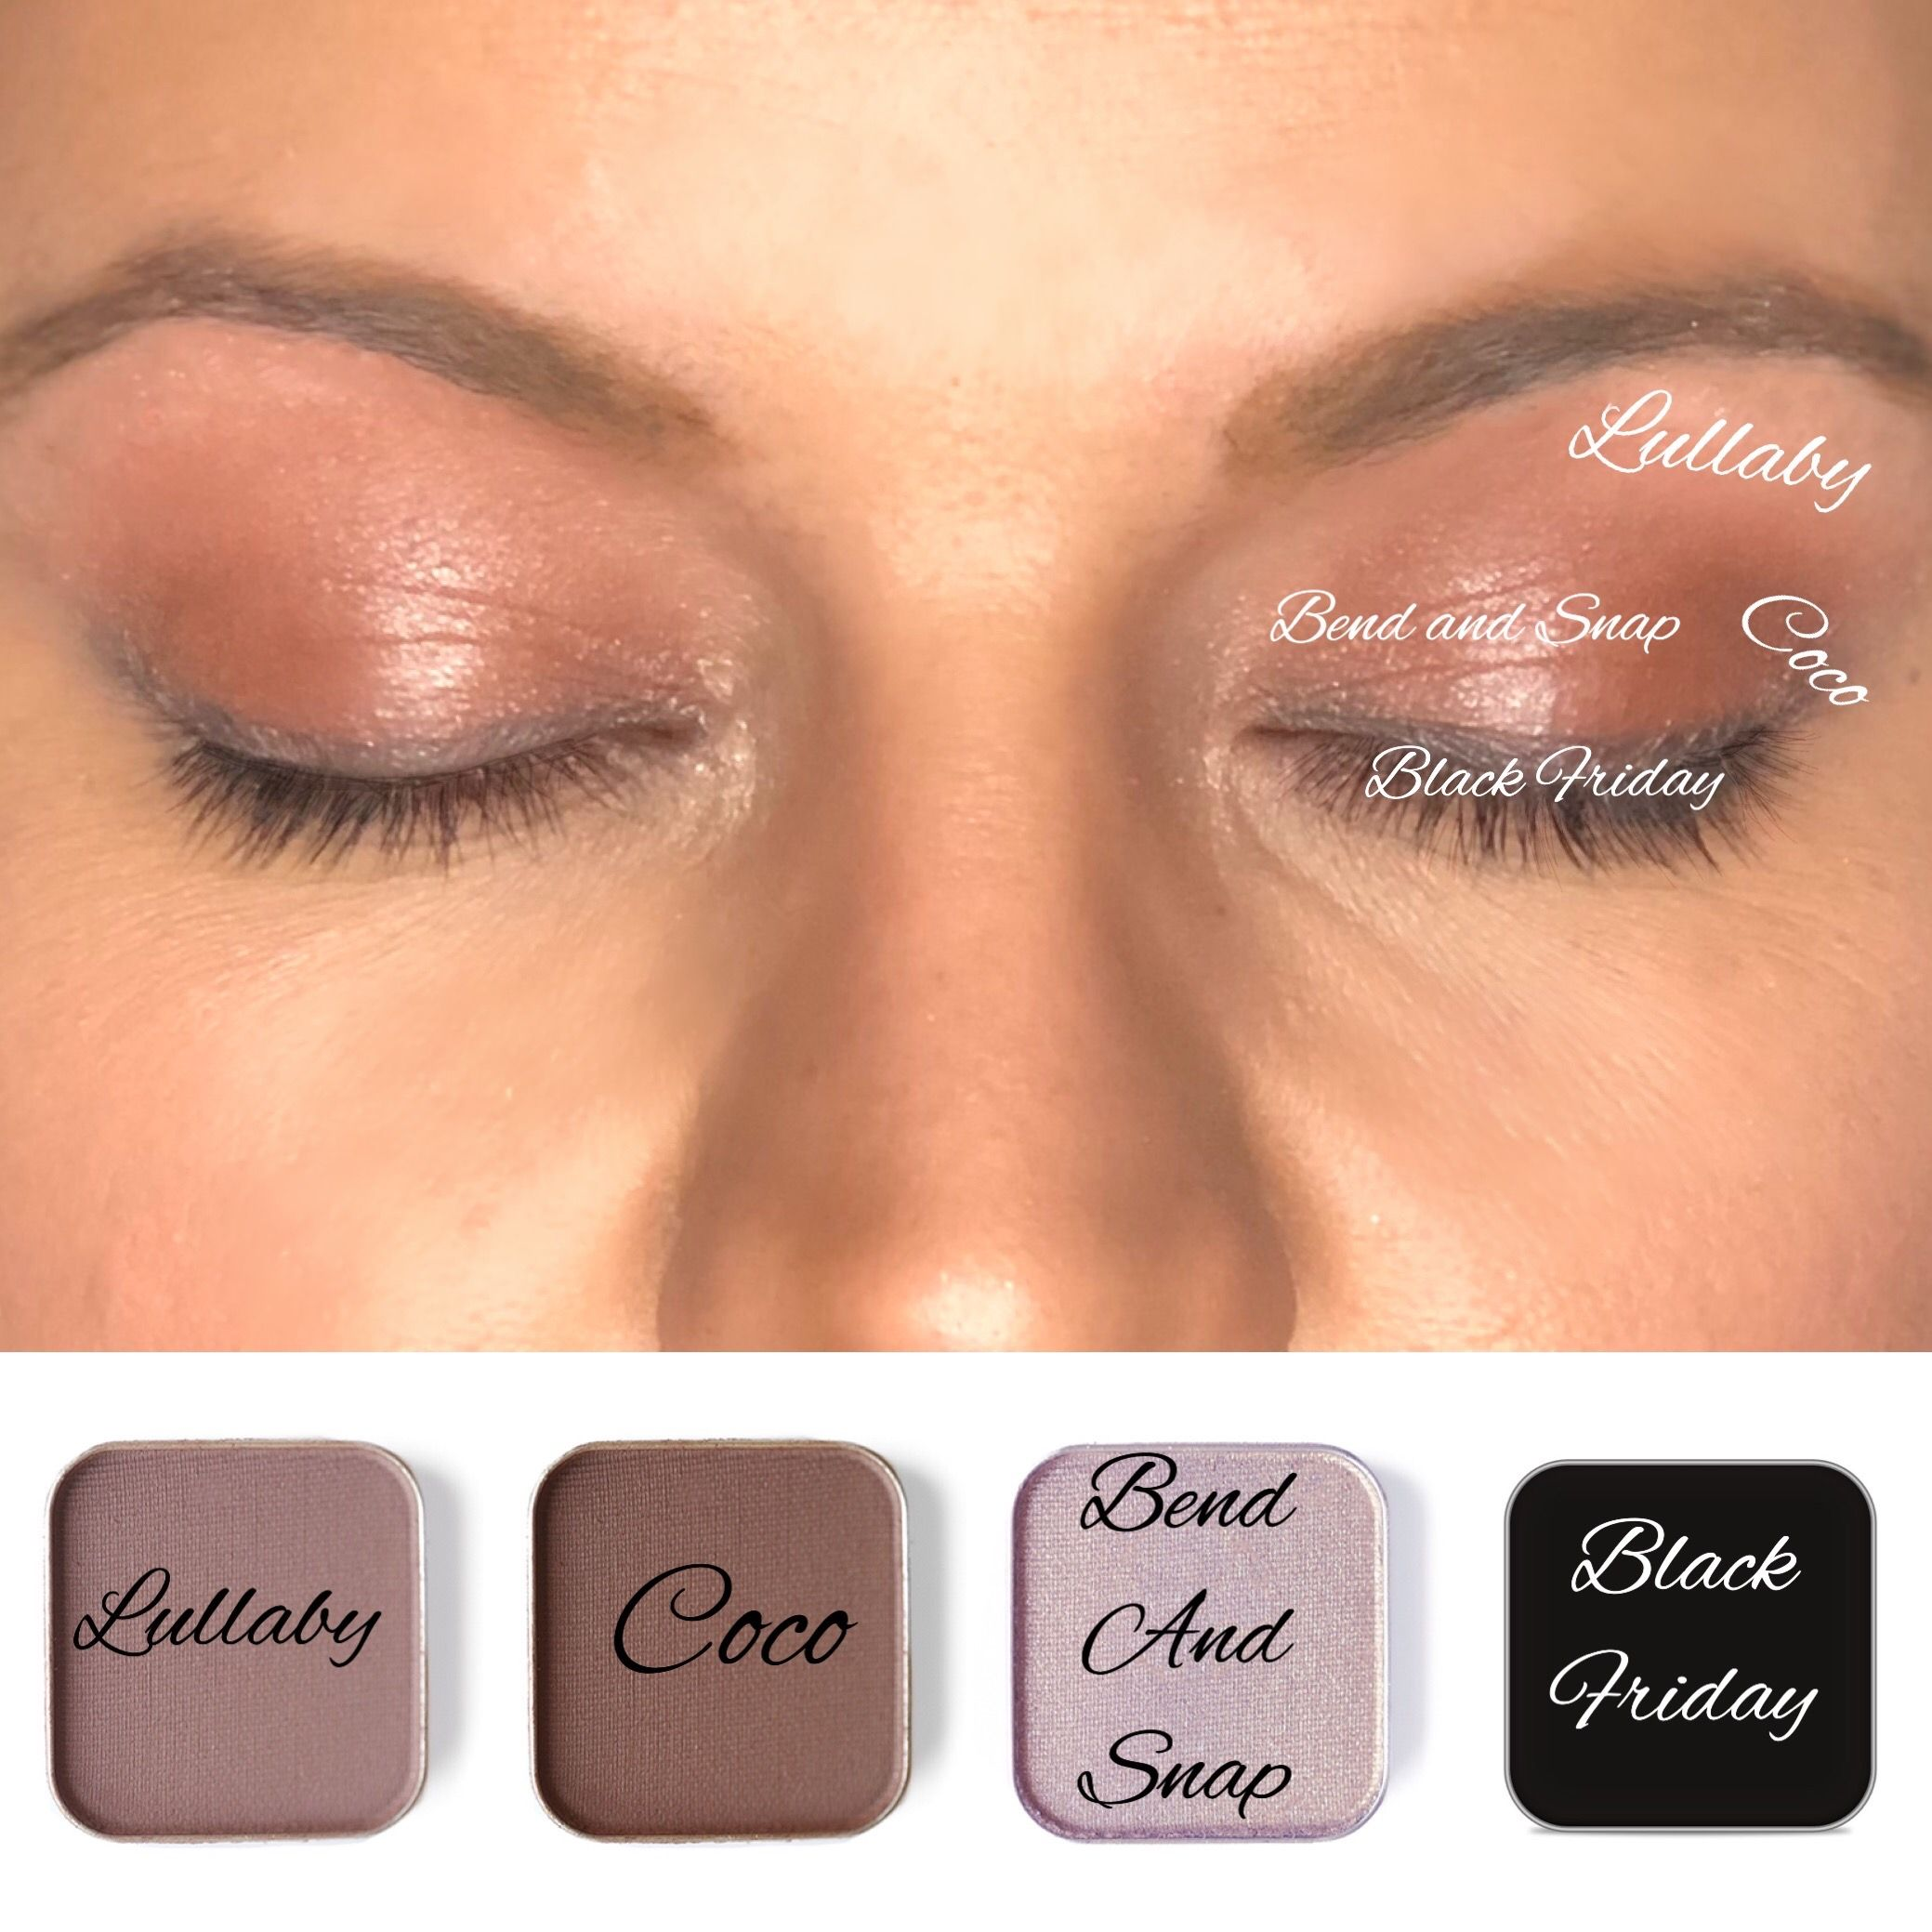 Maskcara Beauty Palettes come customized with your choice